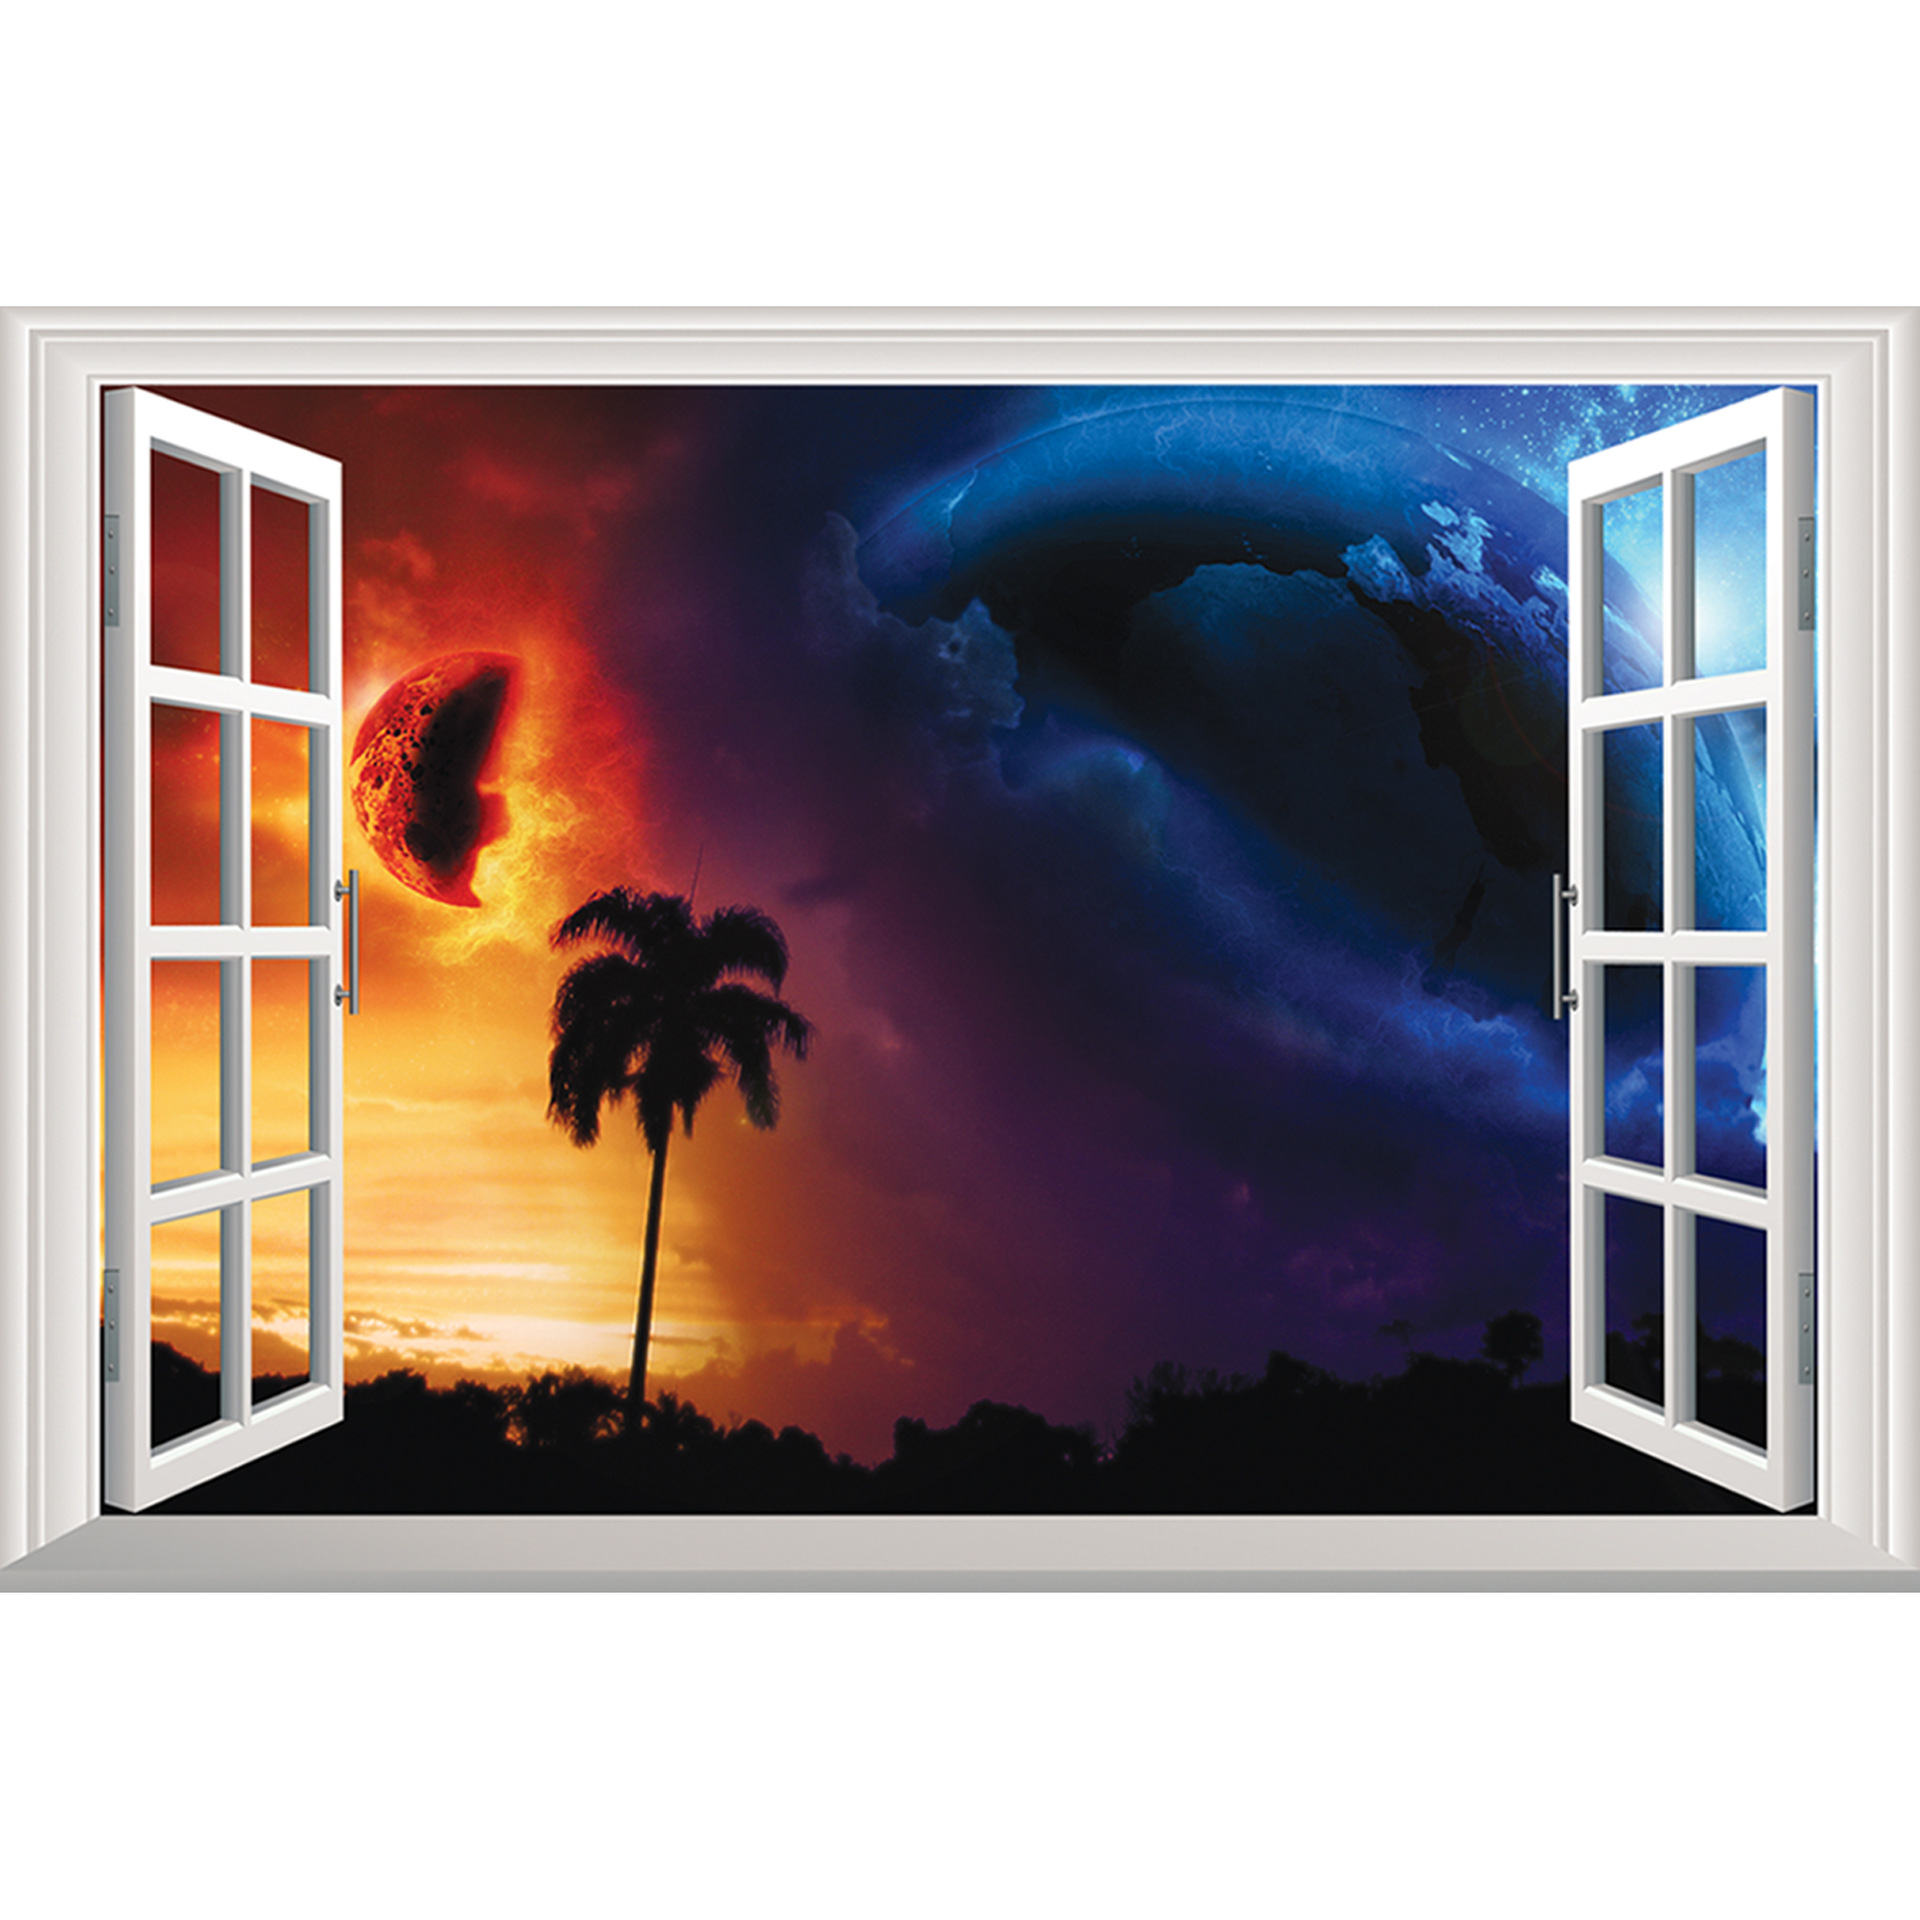 Super Planet Great Earth 3d Wall Sticker Removable Window View Landscape Wallpaper Home Decor Hcx102